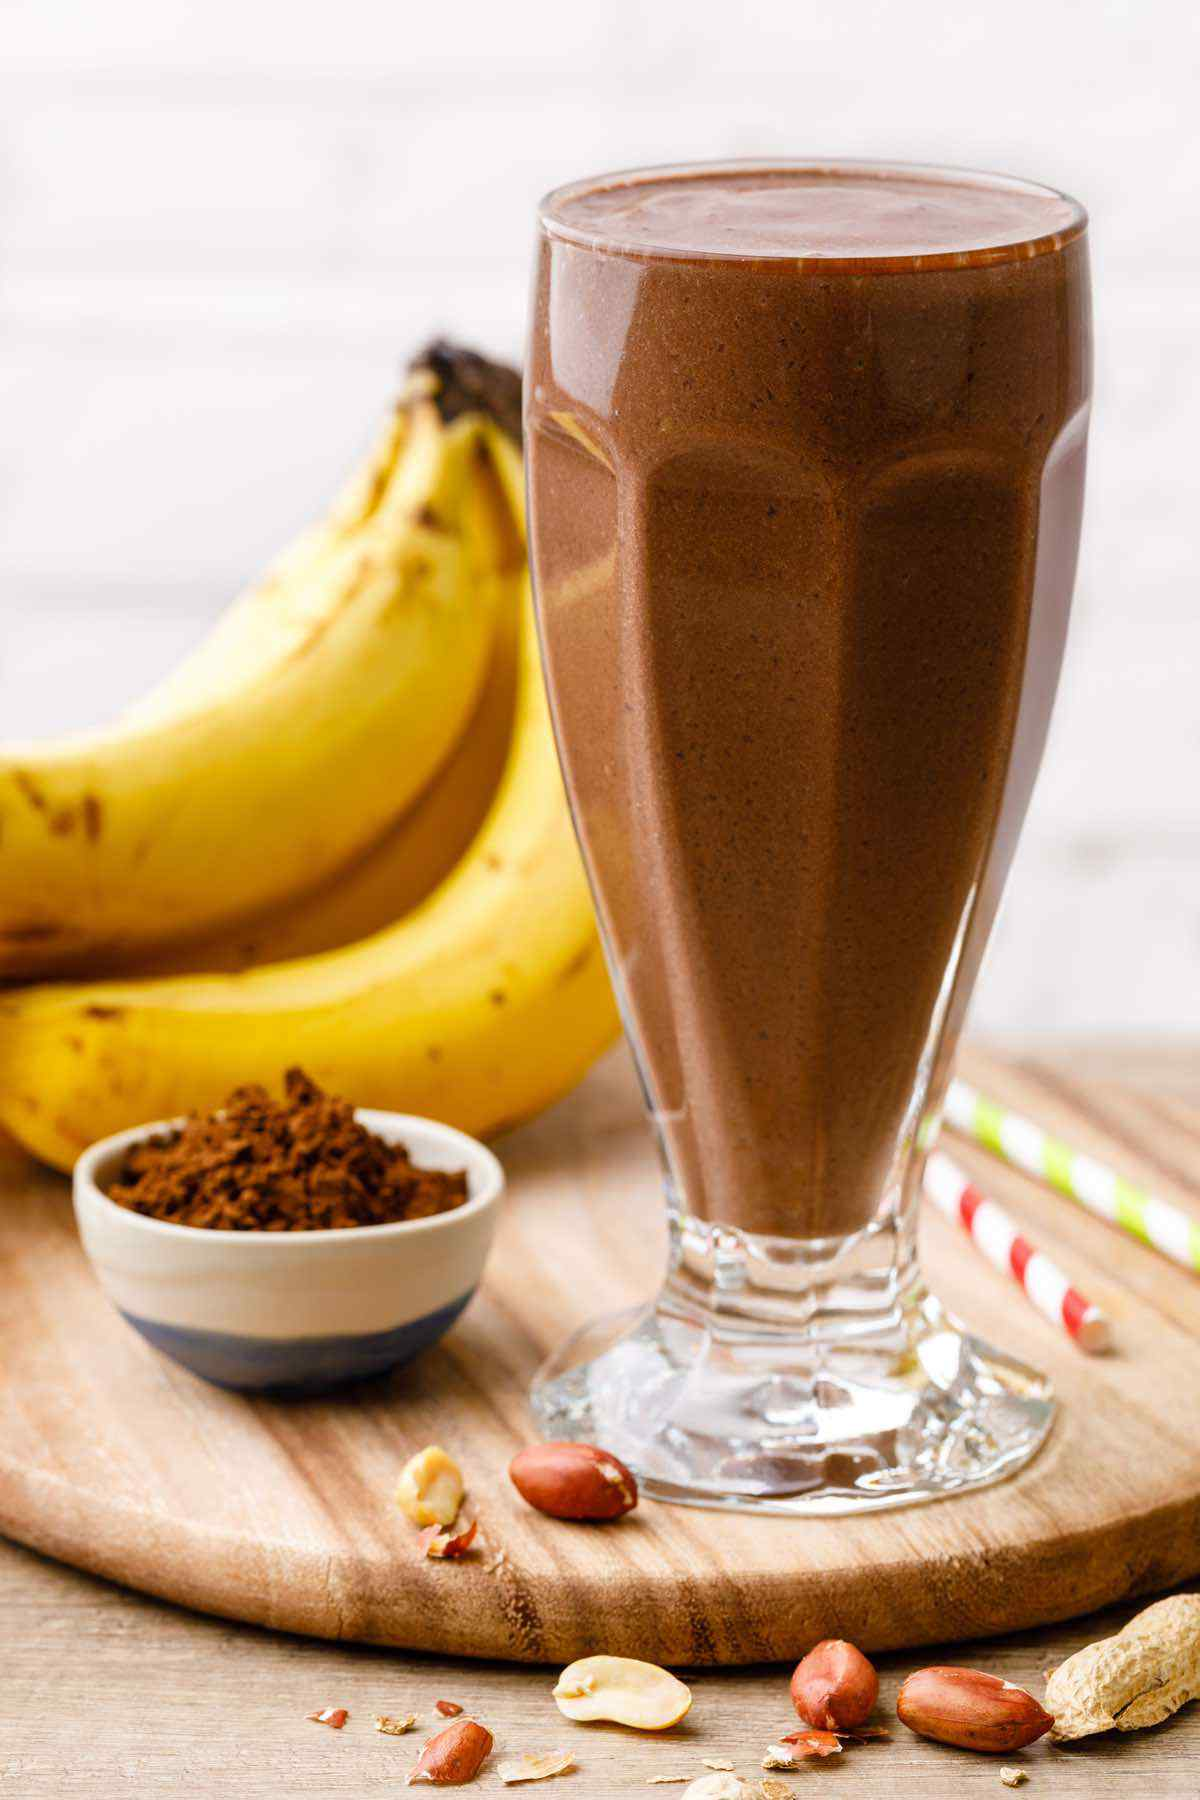 Easy 4-Ingredient Chocolate Smoothie